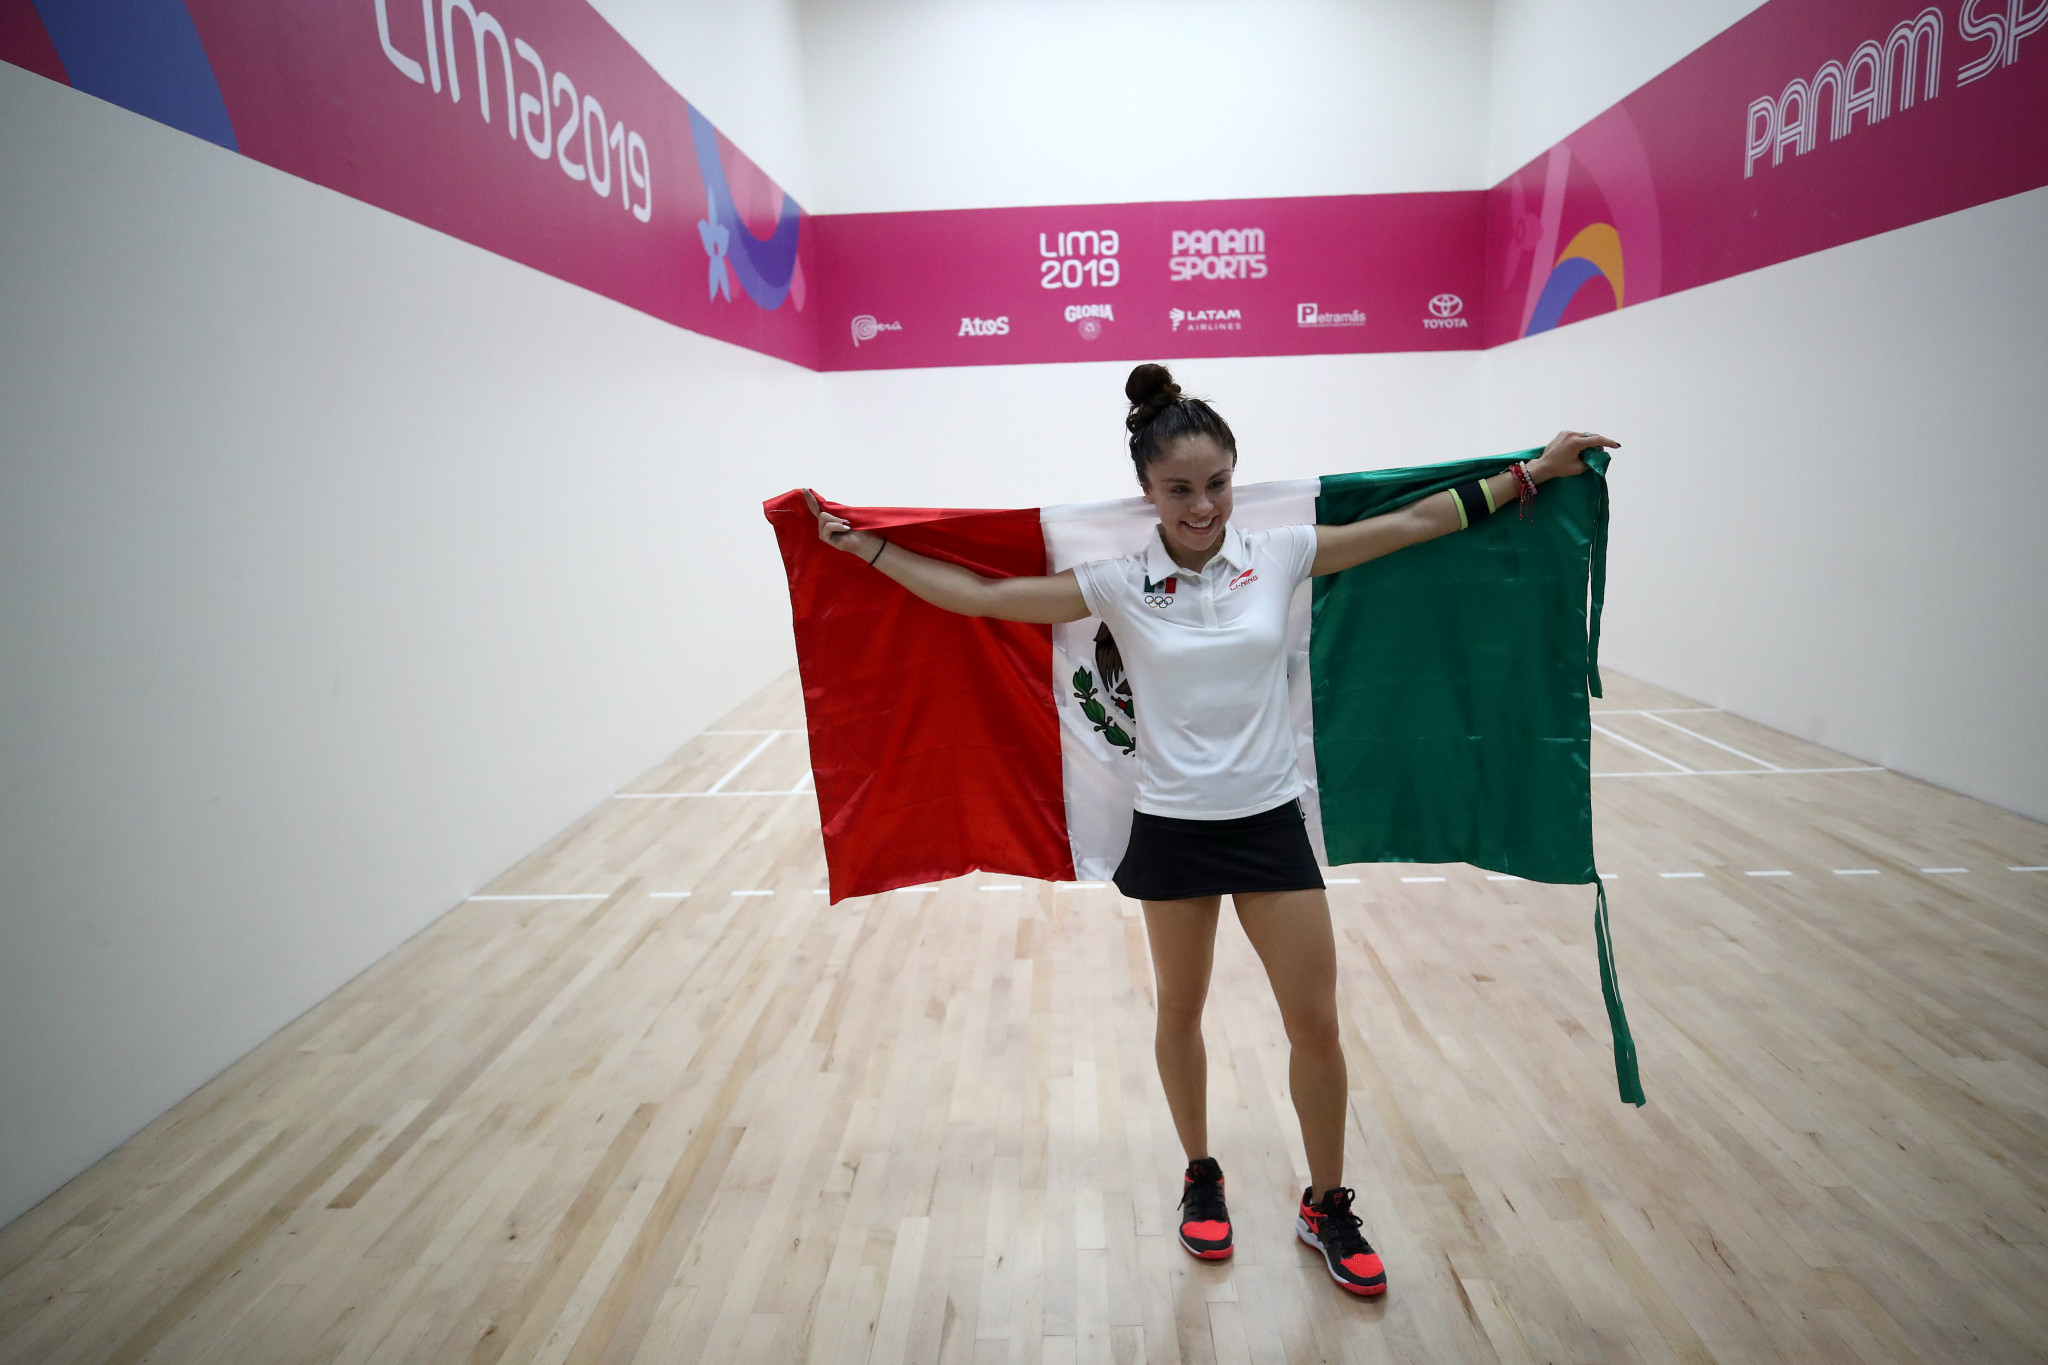 Mexican racquetball star Longoria earns third consecutive Pan American Games singles title